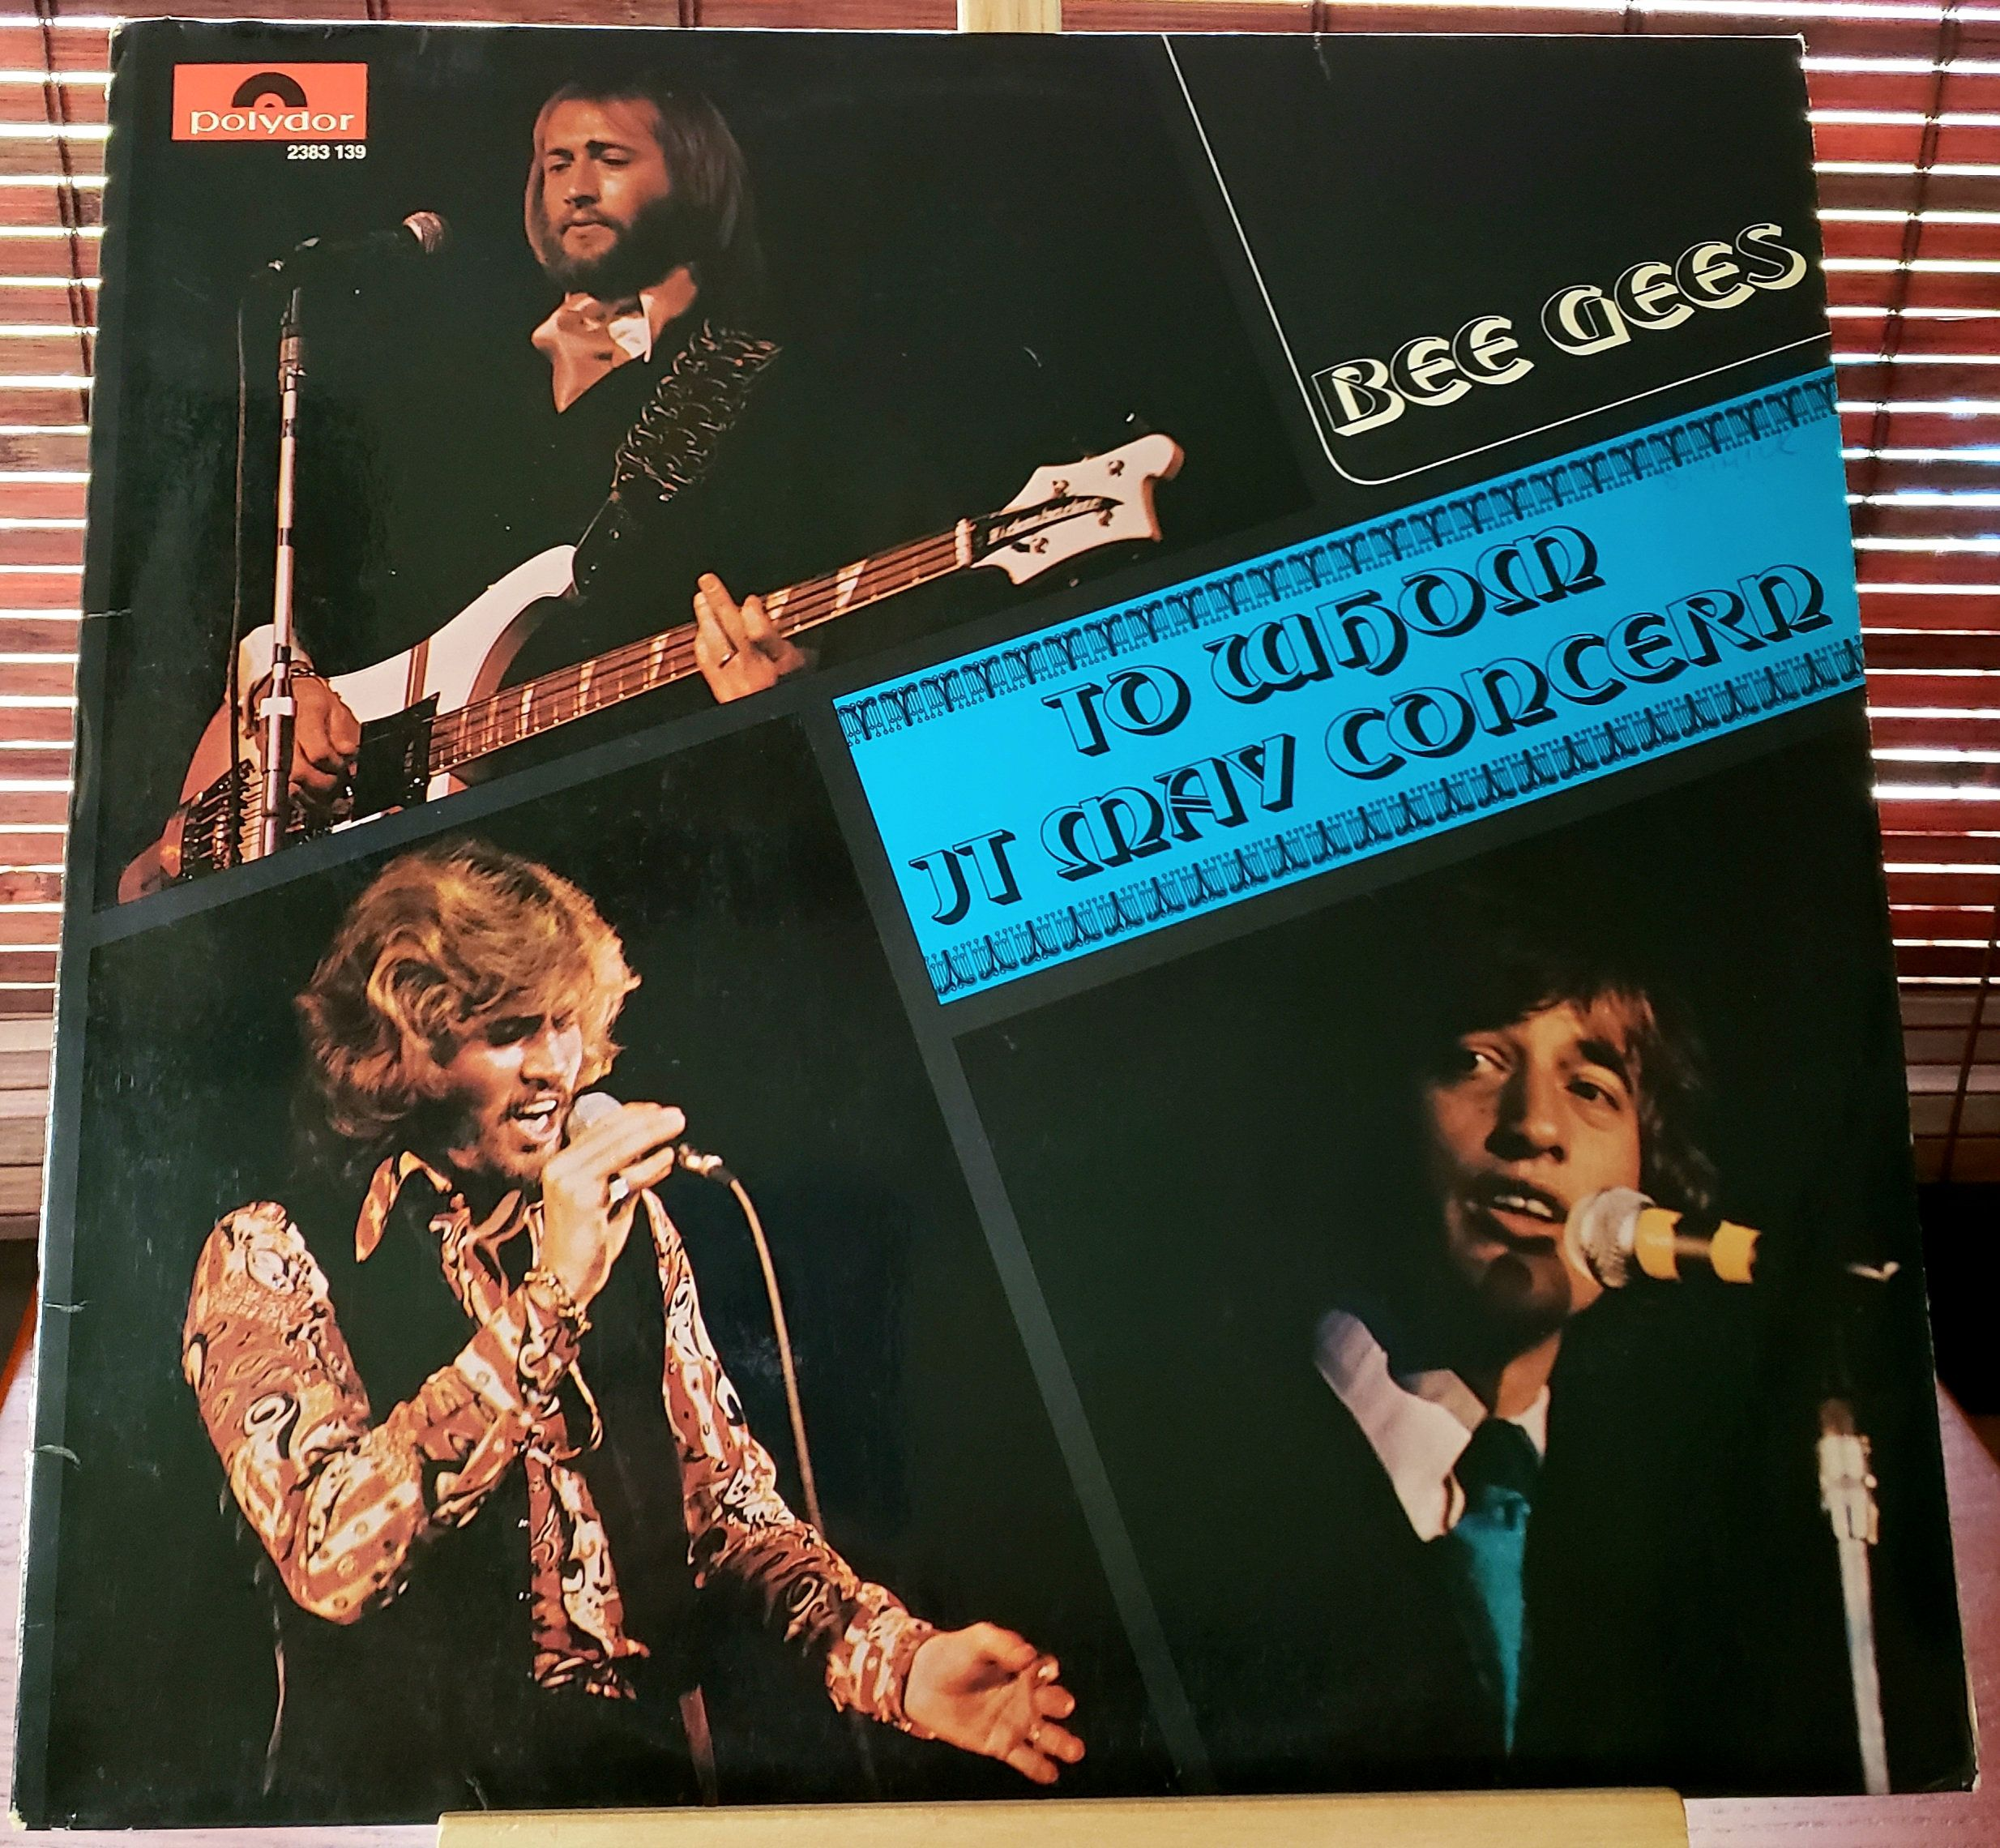 Bee Gees To Whom It May Concern Vinyl Lp Polydor Gema 2383 139 1972 By Thevintagebitchfinds On Etsy Bee Gees Vintage Bee Vinyl